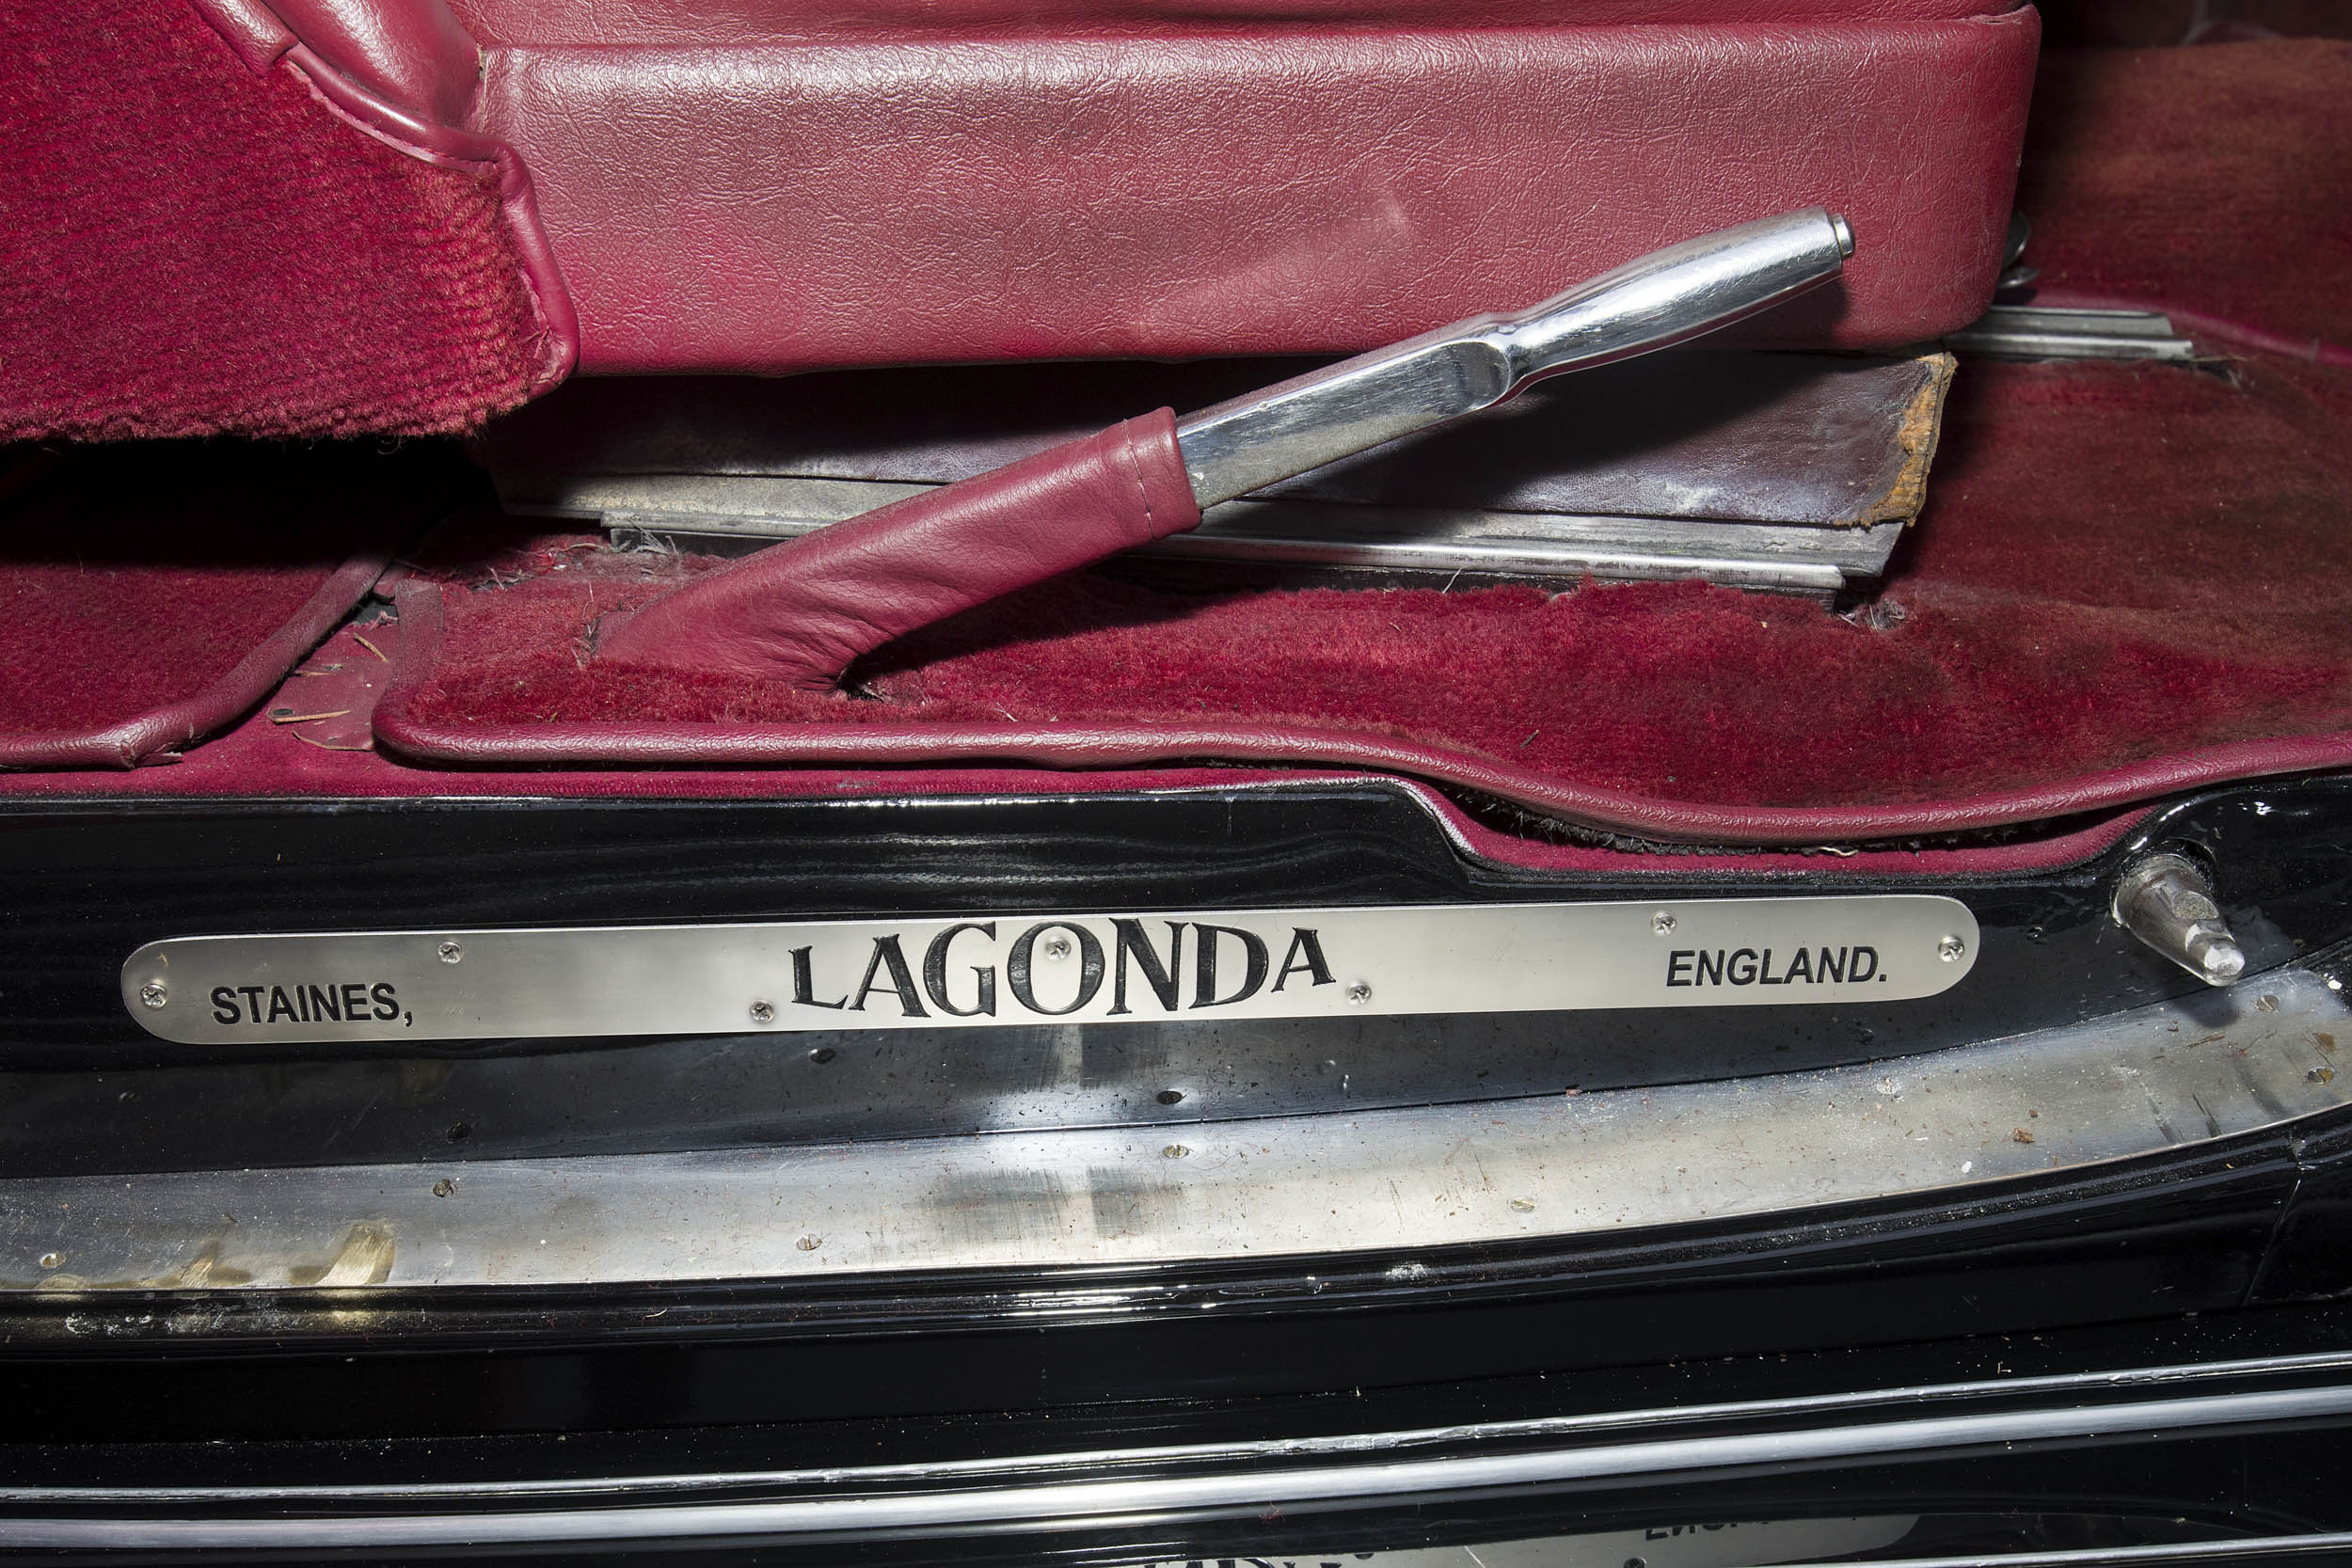 The kickplate below the front doors acknowledges the Staines, England location of the pre-war Lagonda factory.